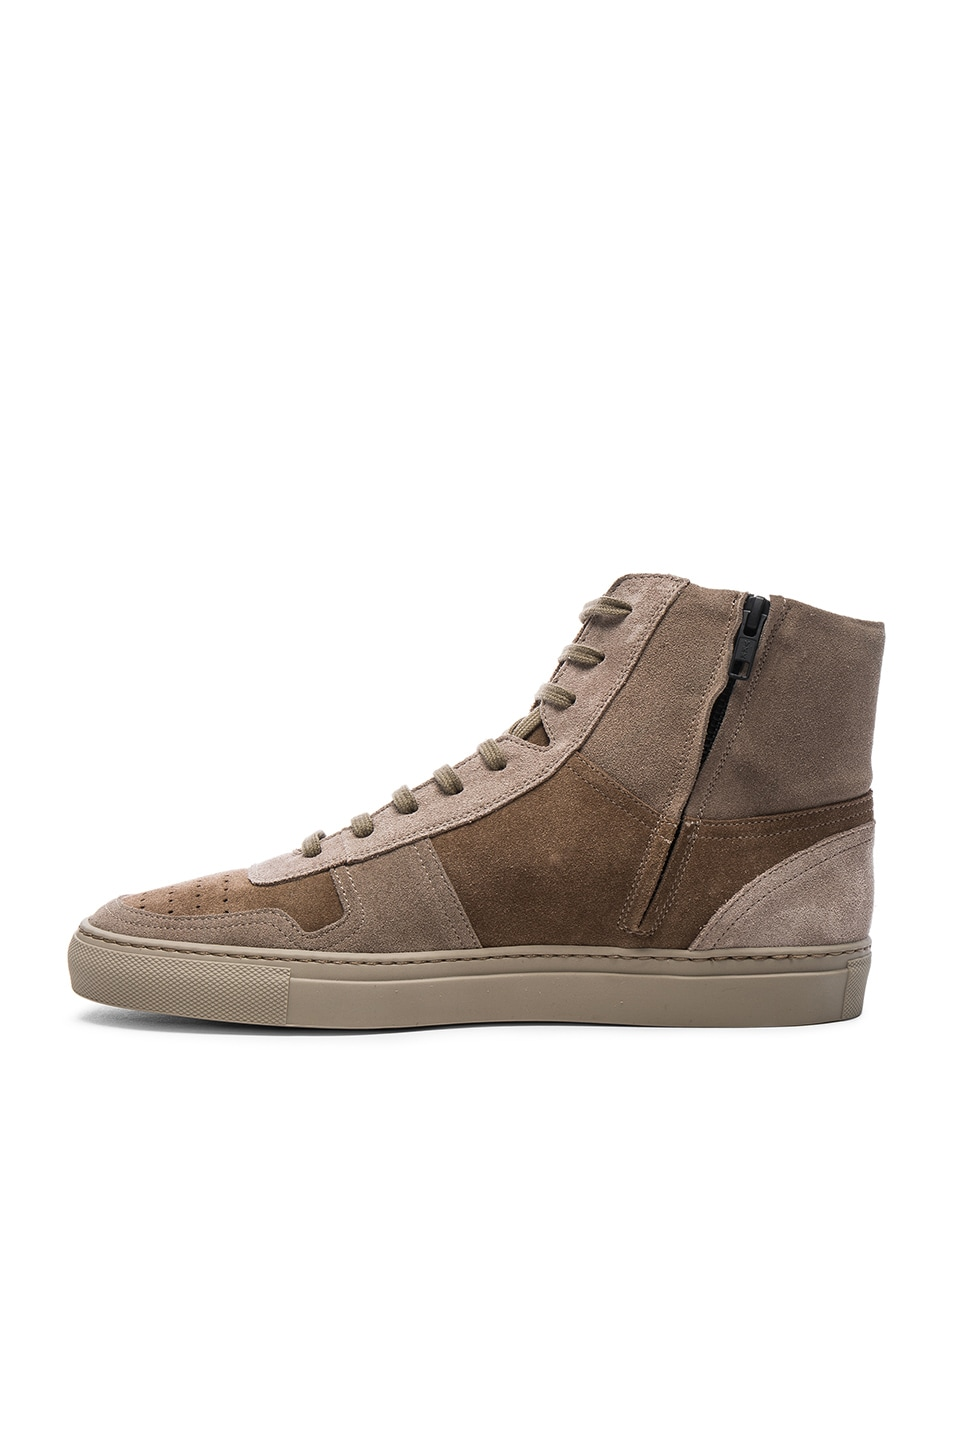 4d036ccf840d7b Image 5 of Robert Geller x Common Projects Suede High Top Sneakers in Taupe